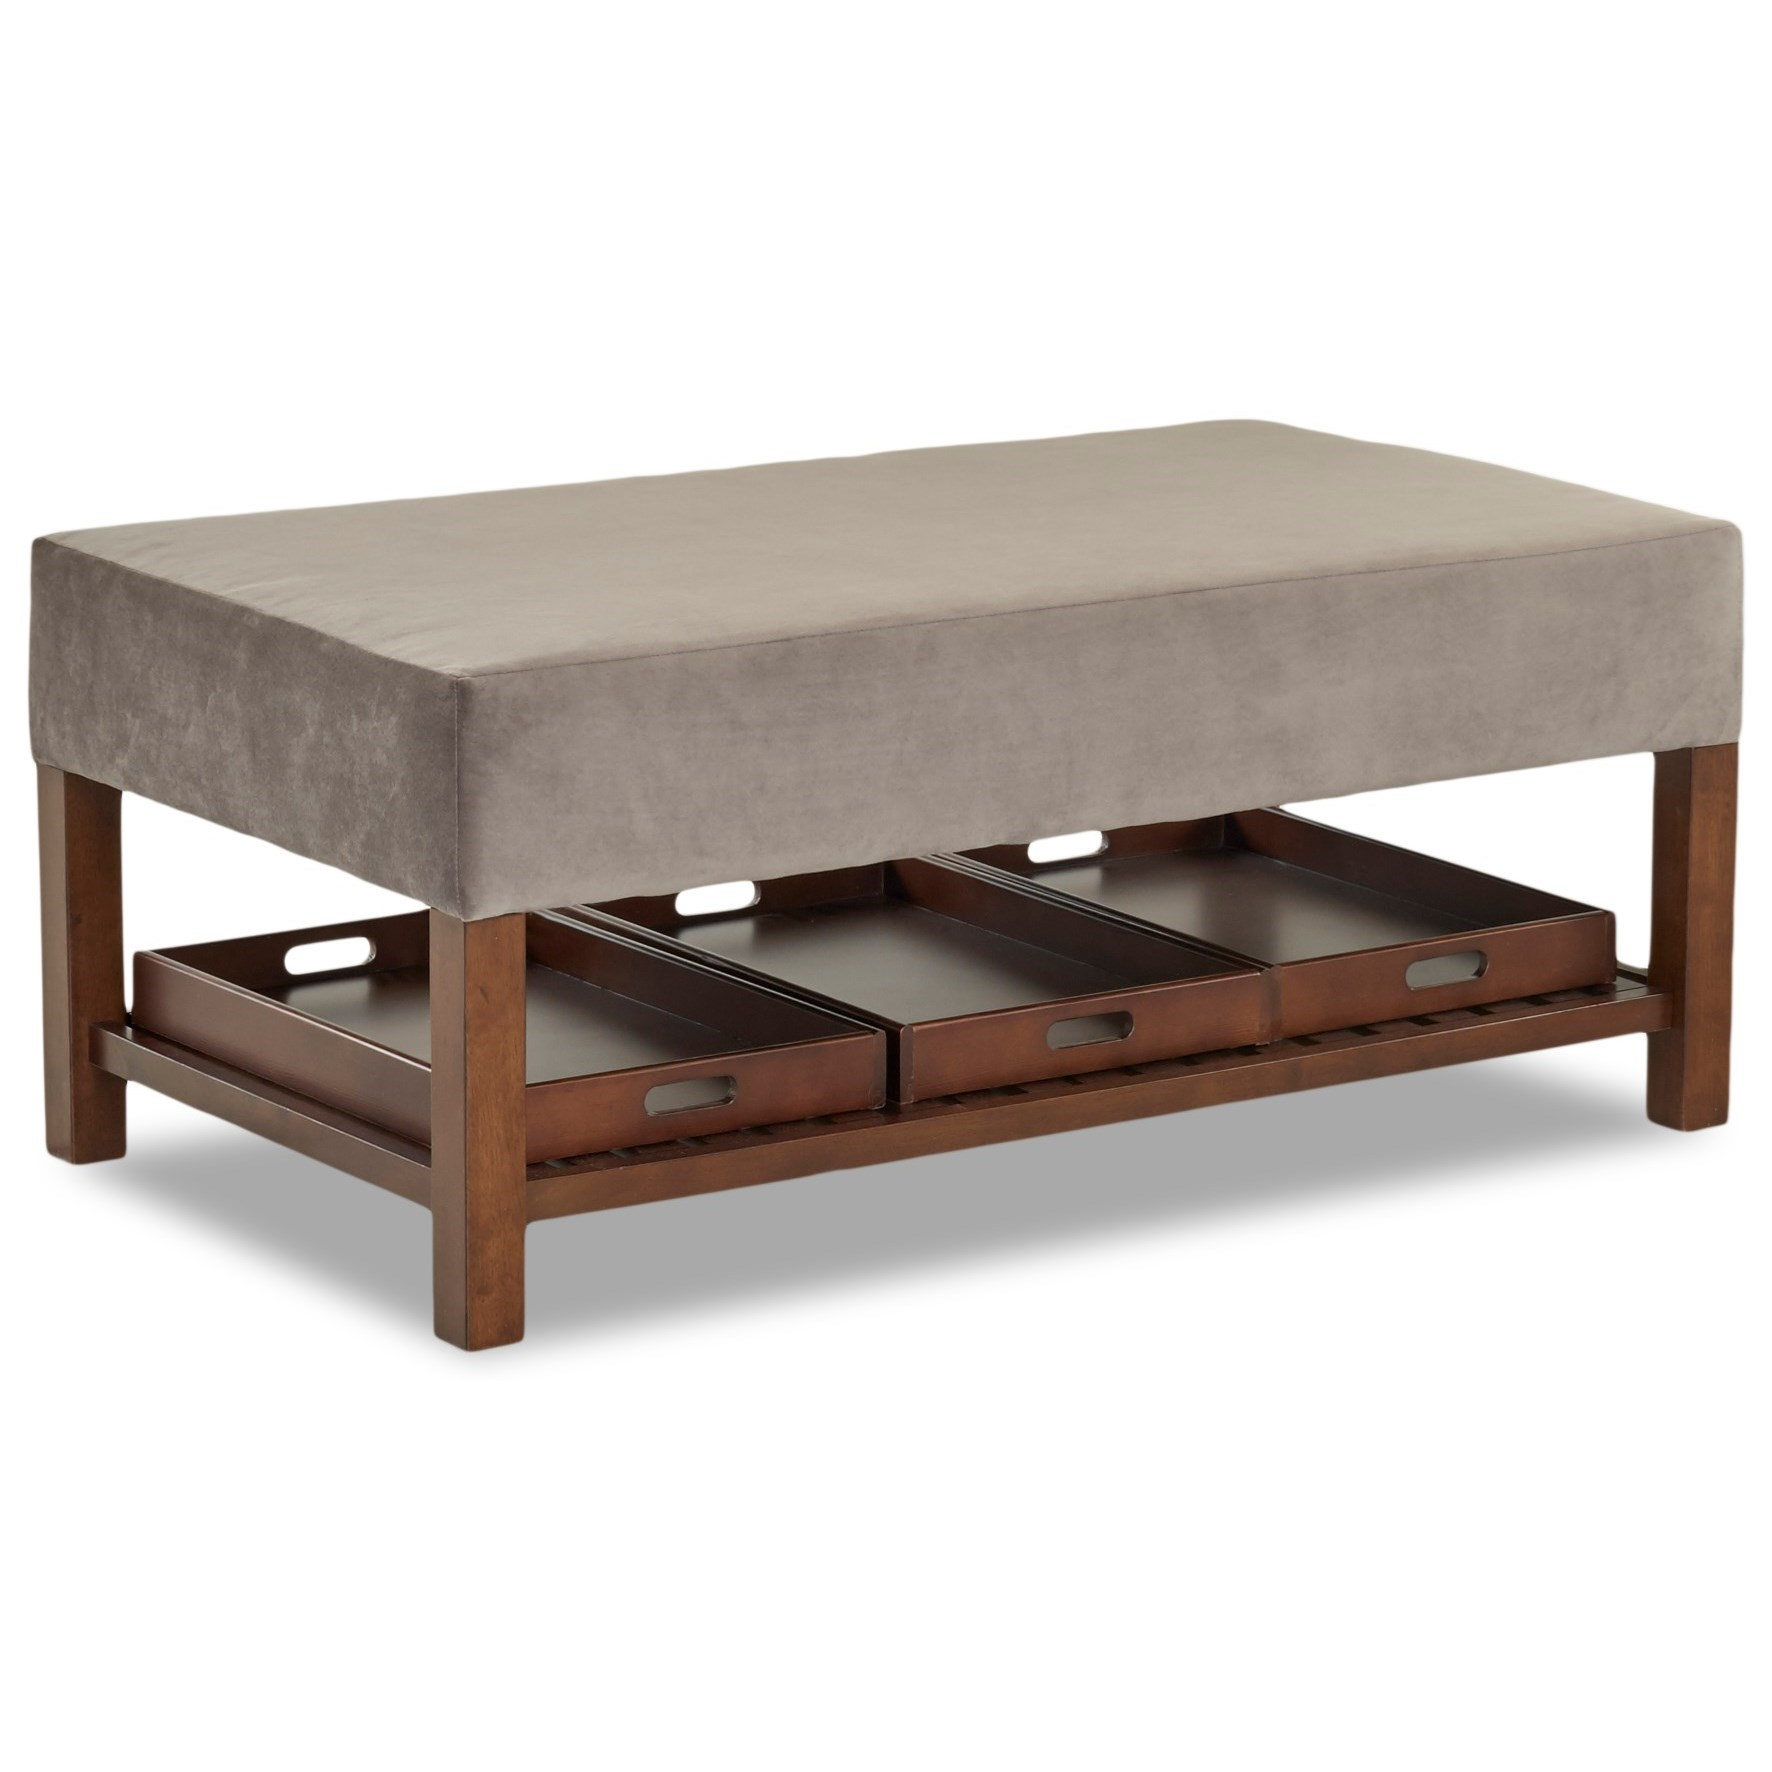 Chairs and Accents Ottoman by Klaussner at Johnny Janosik